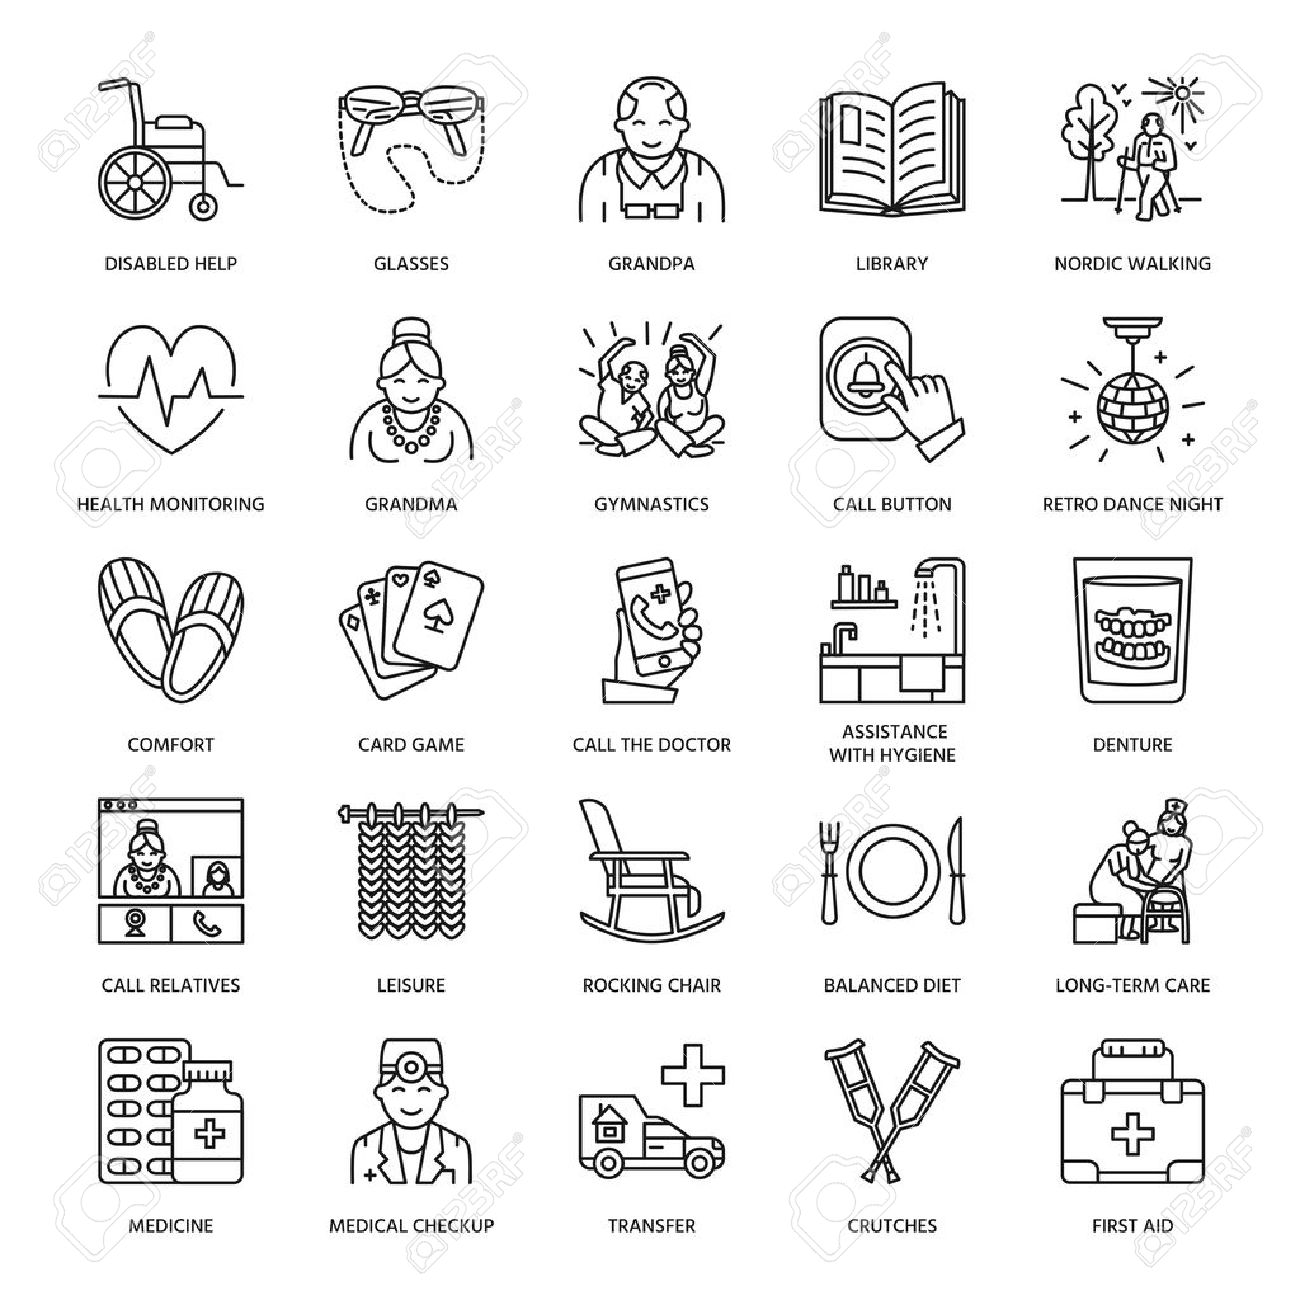 Modern vector line icon of senior and elderly care. Nursing home elements - old people, wheelchair, leisure, hospital call button, medicines. Linear pictograms with editable stroke for sites, brochures. - 66481647